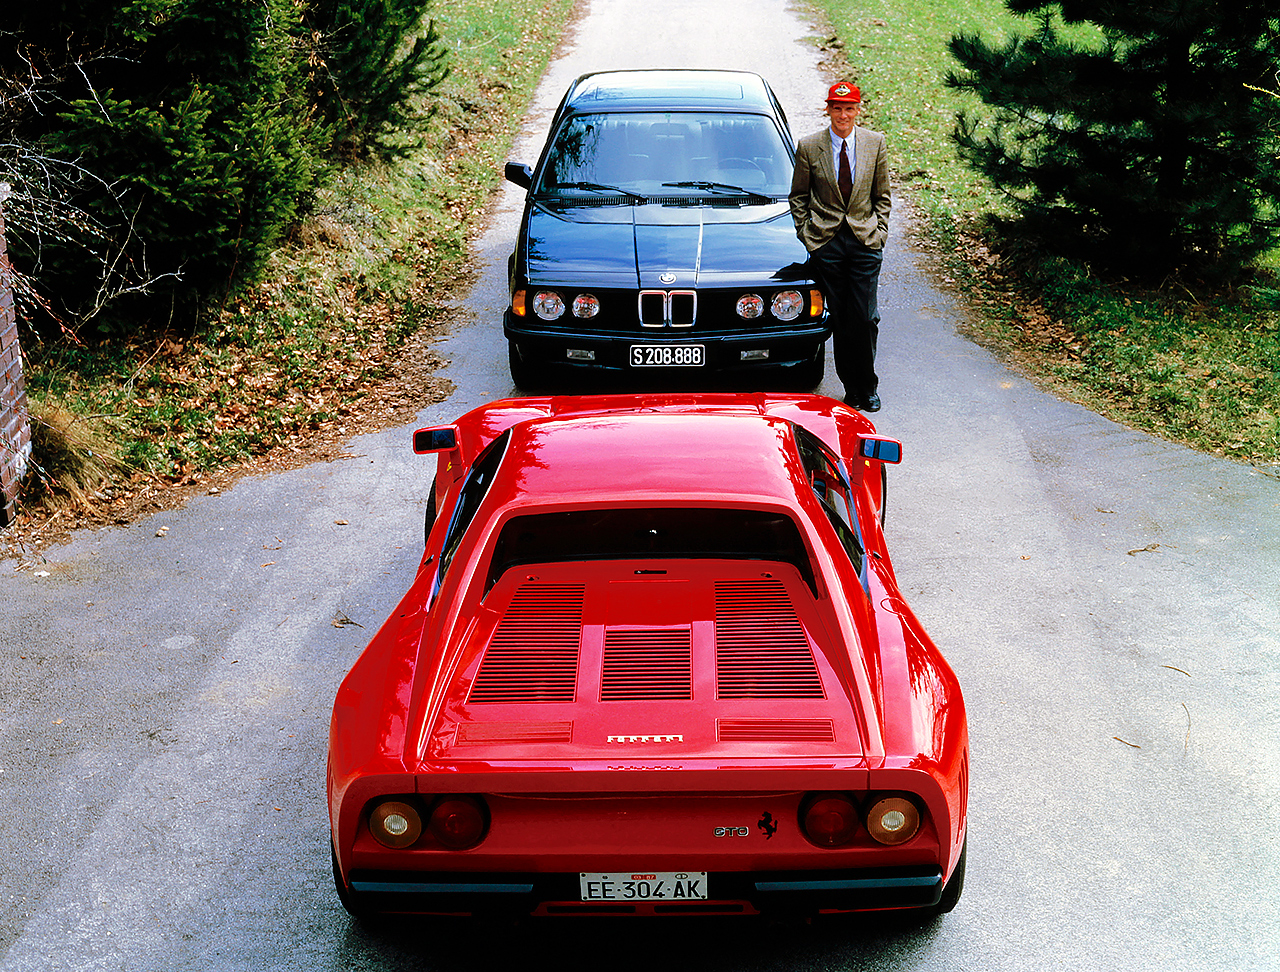 1986 Niki Lauda's Ferrari 288 GTO and BMW 745i E23